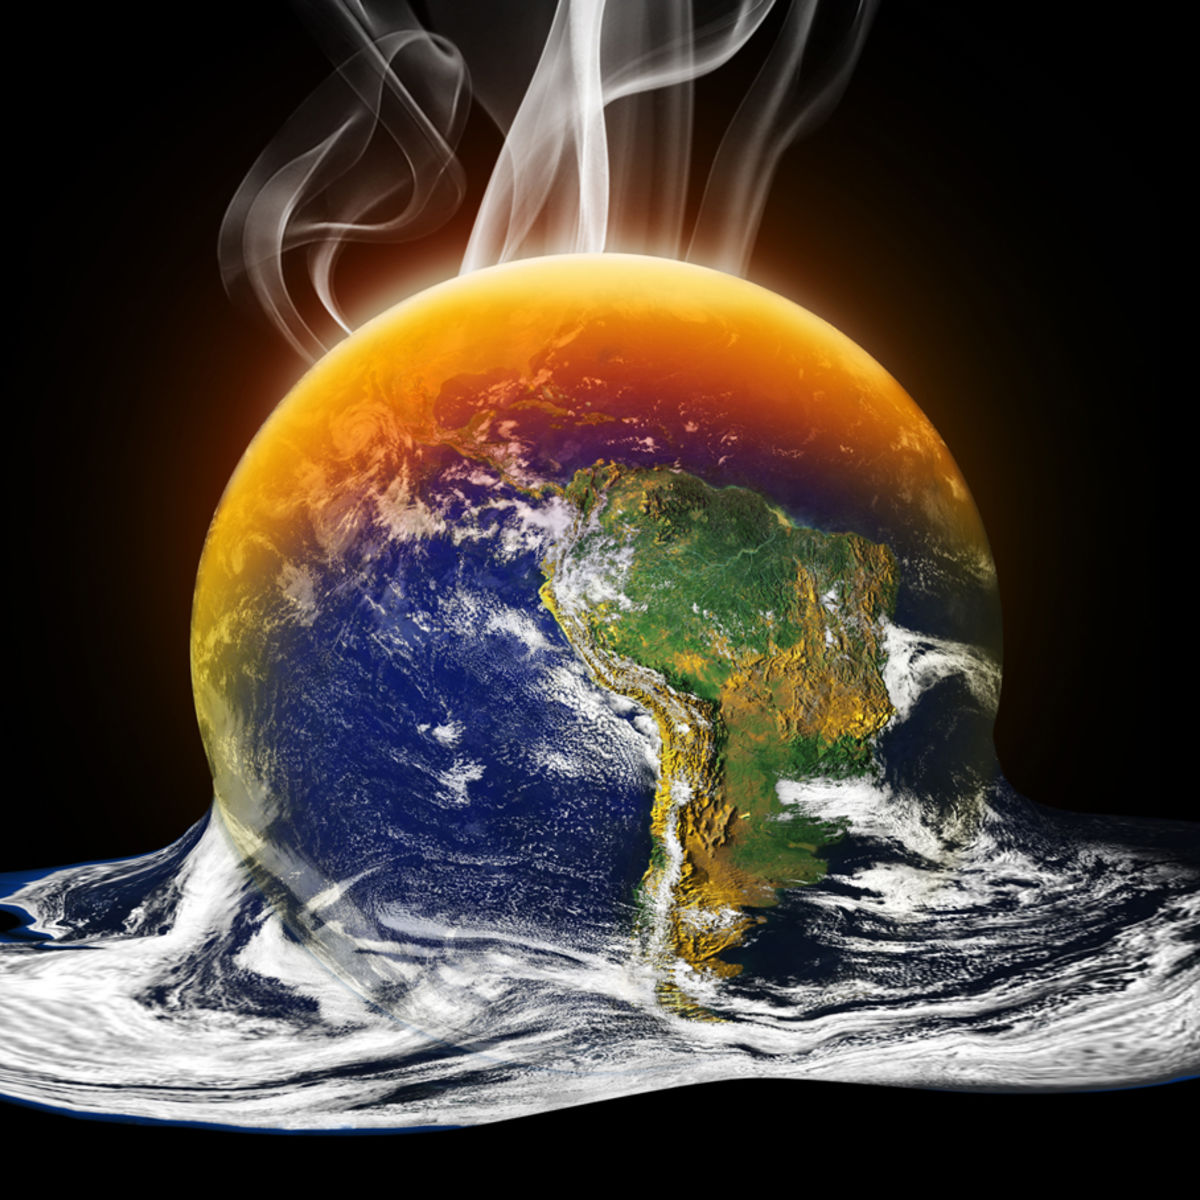 Media Global Warming: UK Media Watchdog Rules Daily Mail Climate